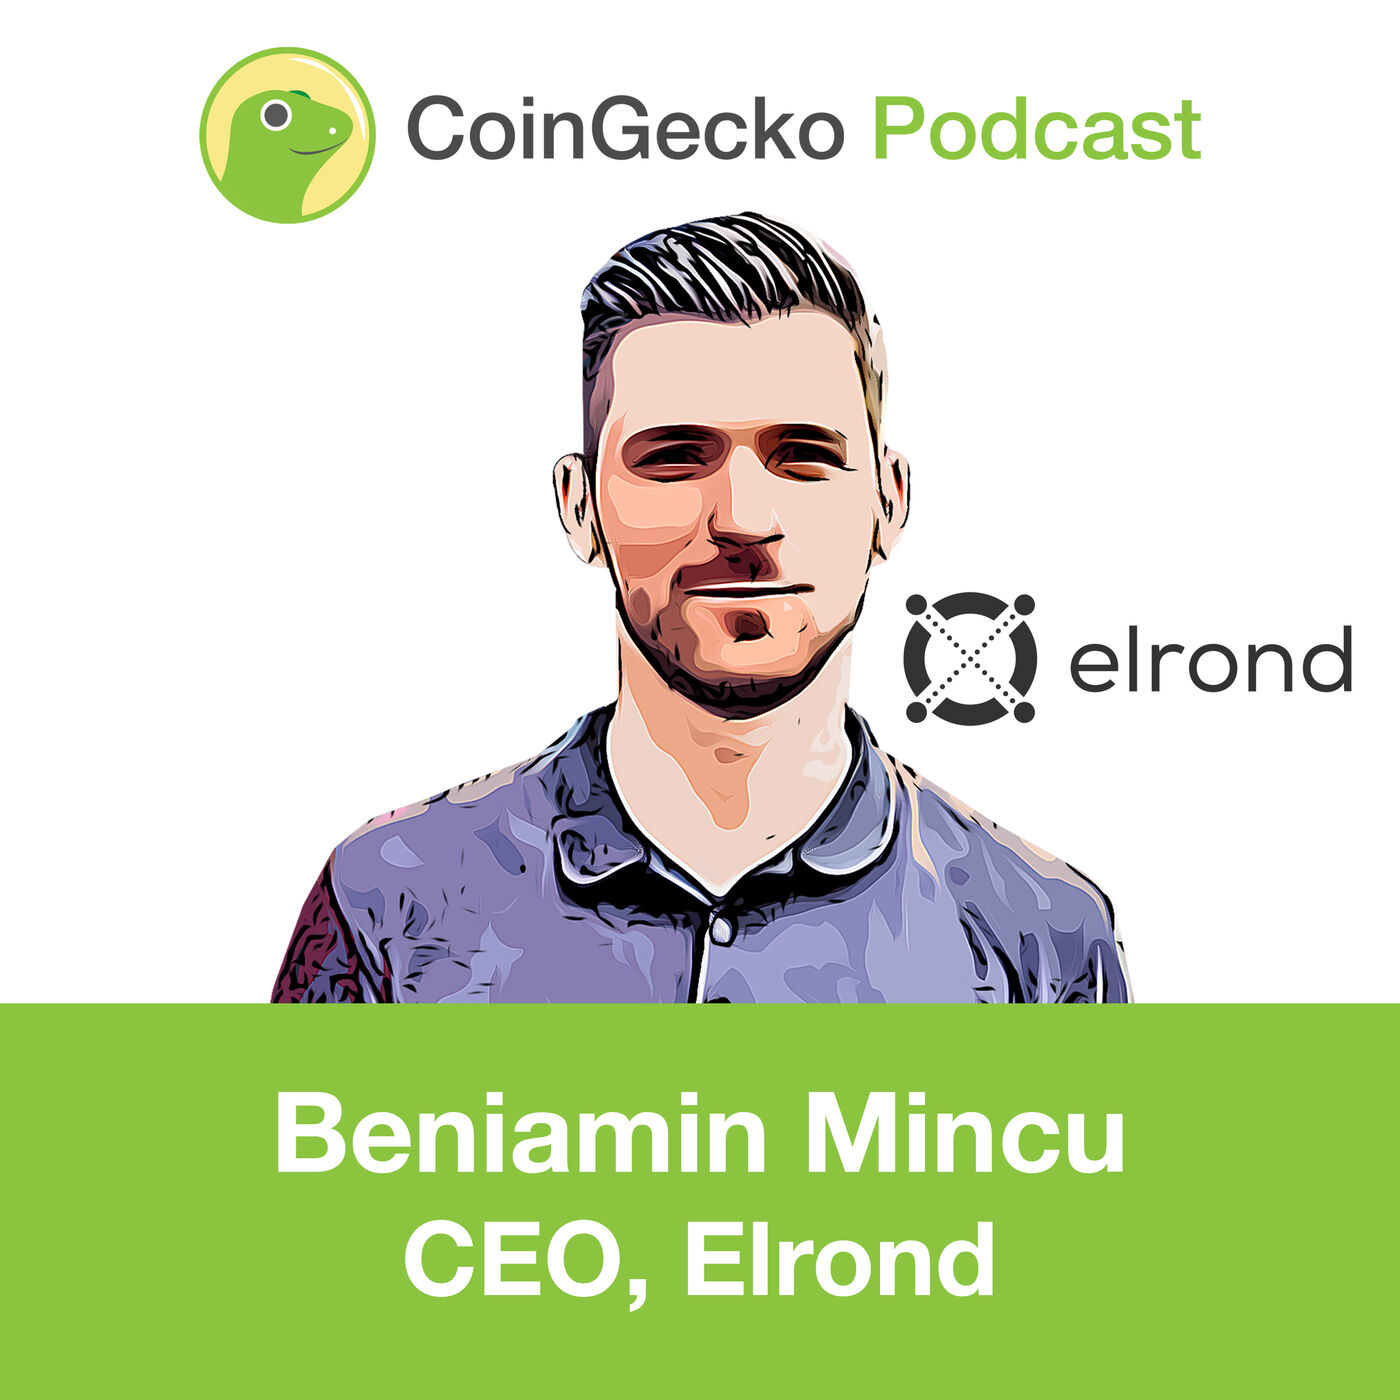 Building a Highly Scalable Blockchain with Beniamin Mincu, CEO of Elrond - Ep. 11